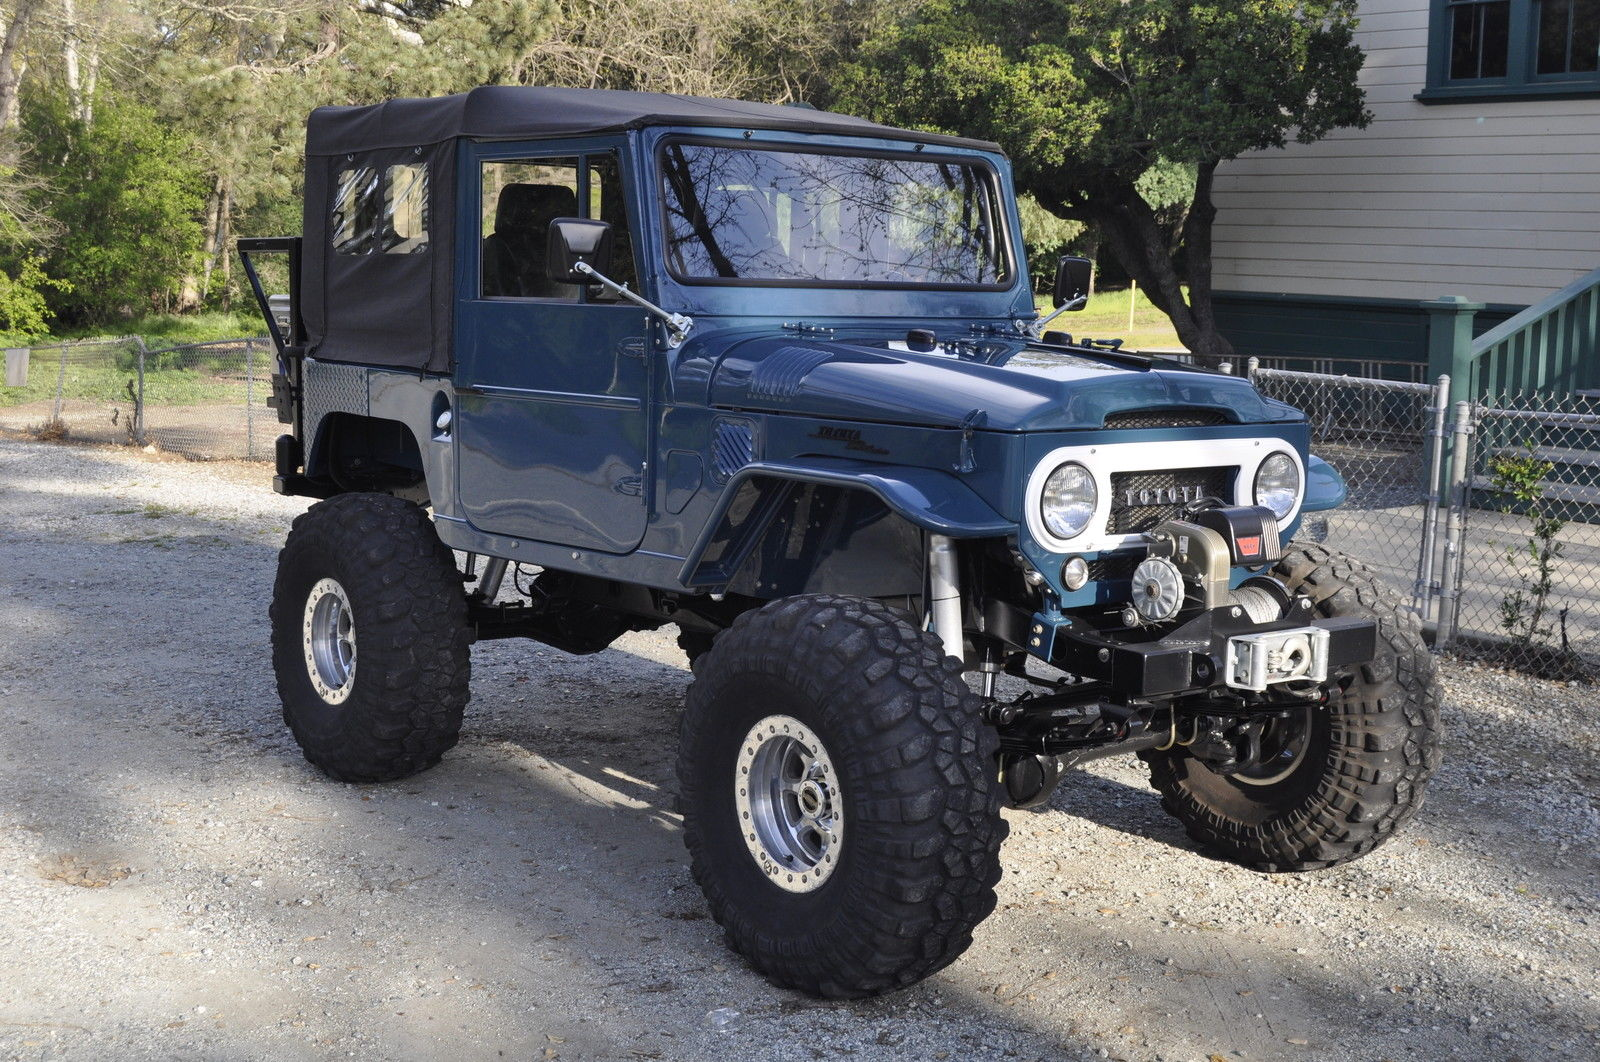 1966 Toyota Land Cruiser Fj40 Restomod For Sale